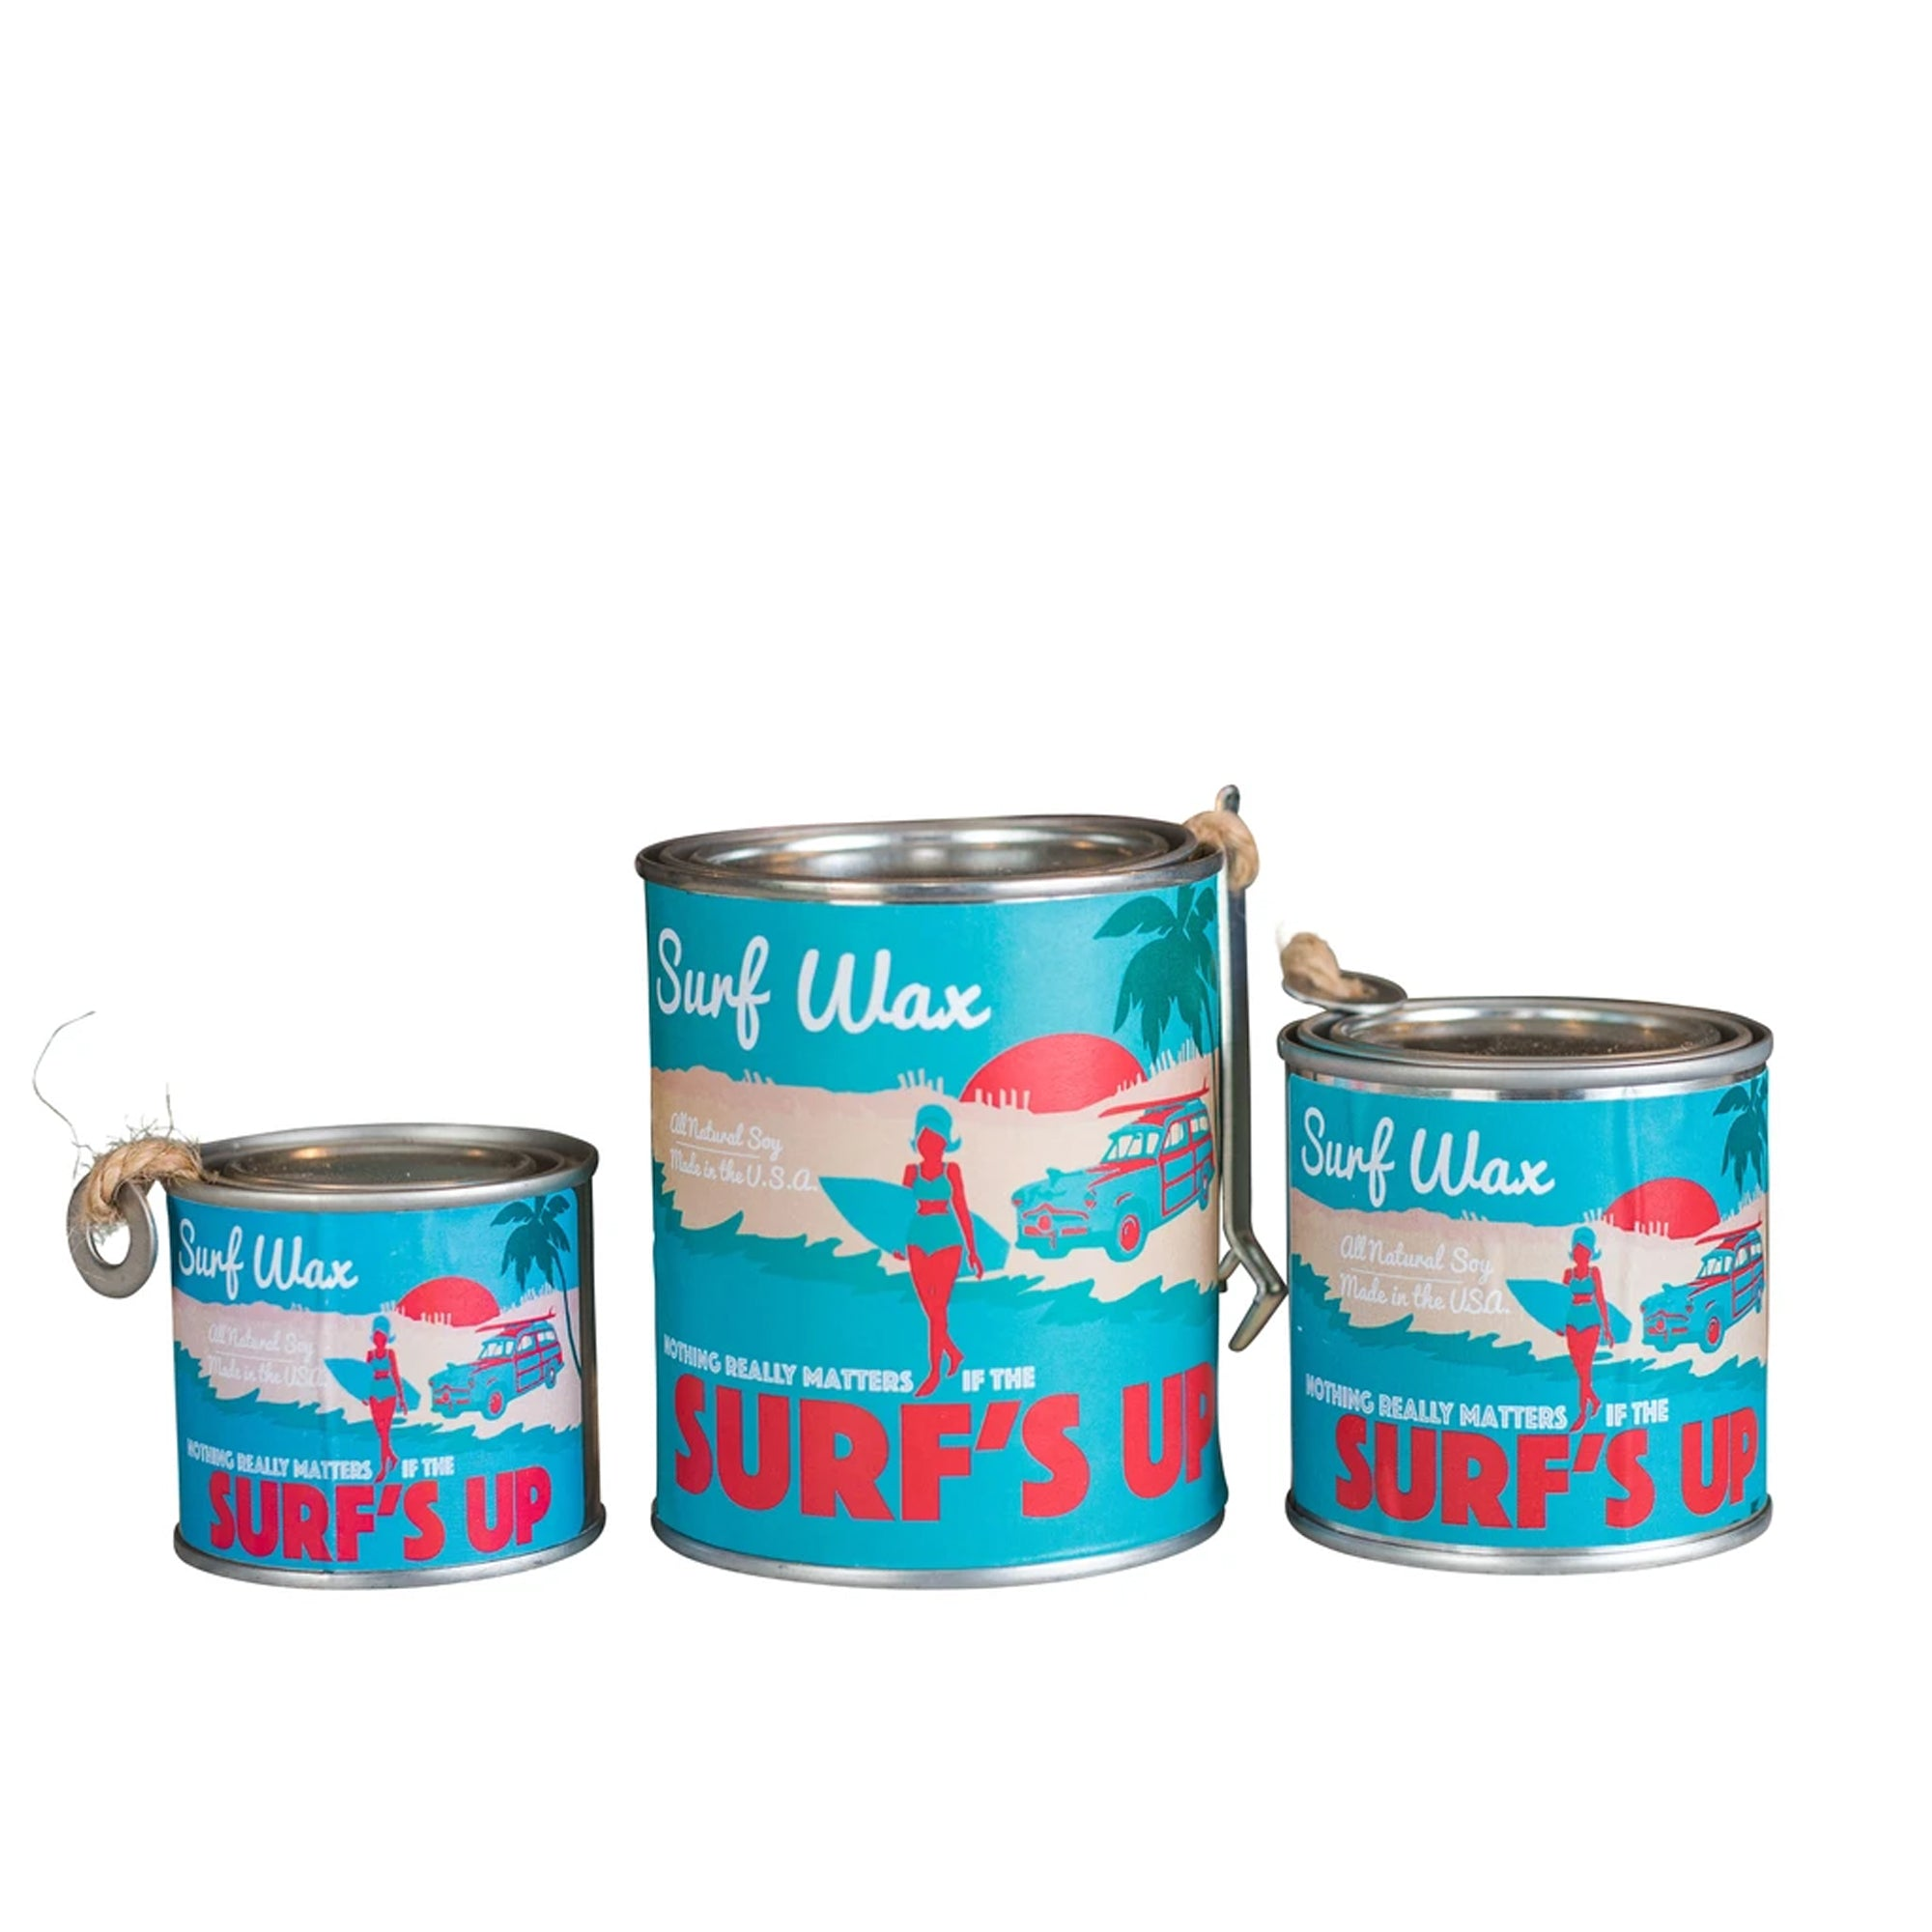 Surf's Up Paint Can Candle - Surf Wax